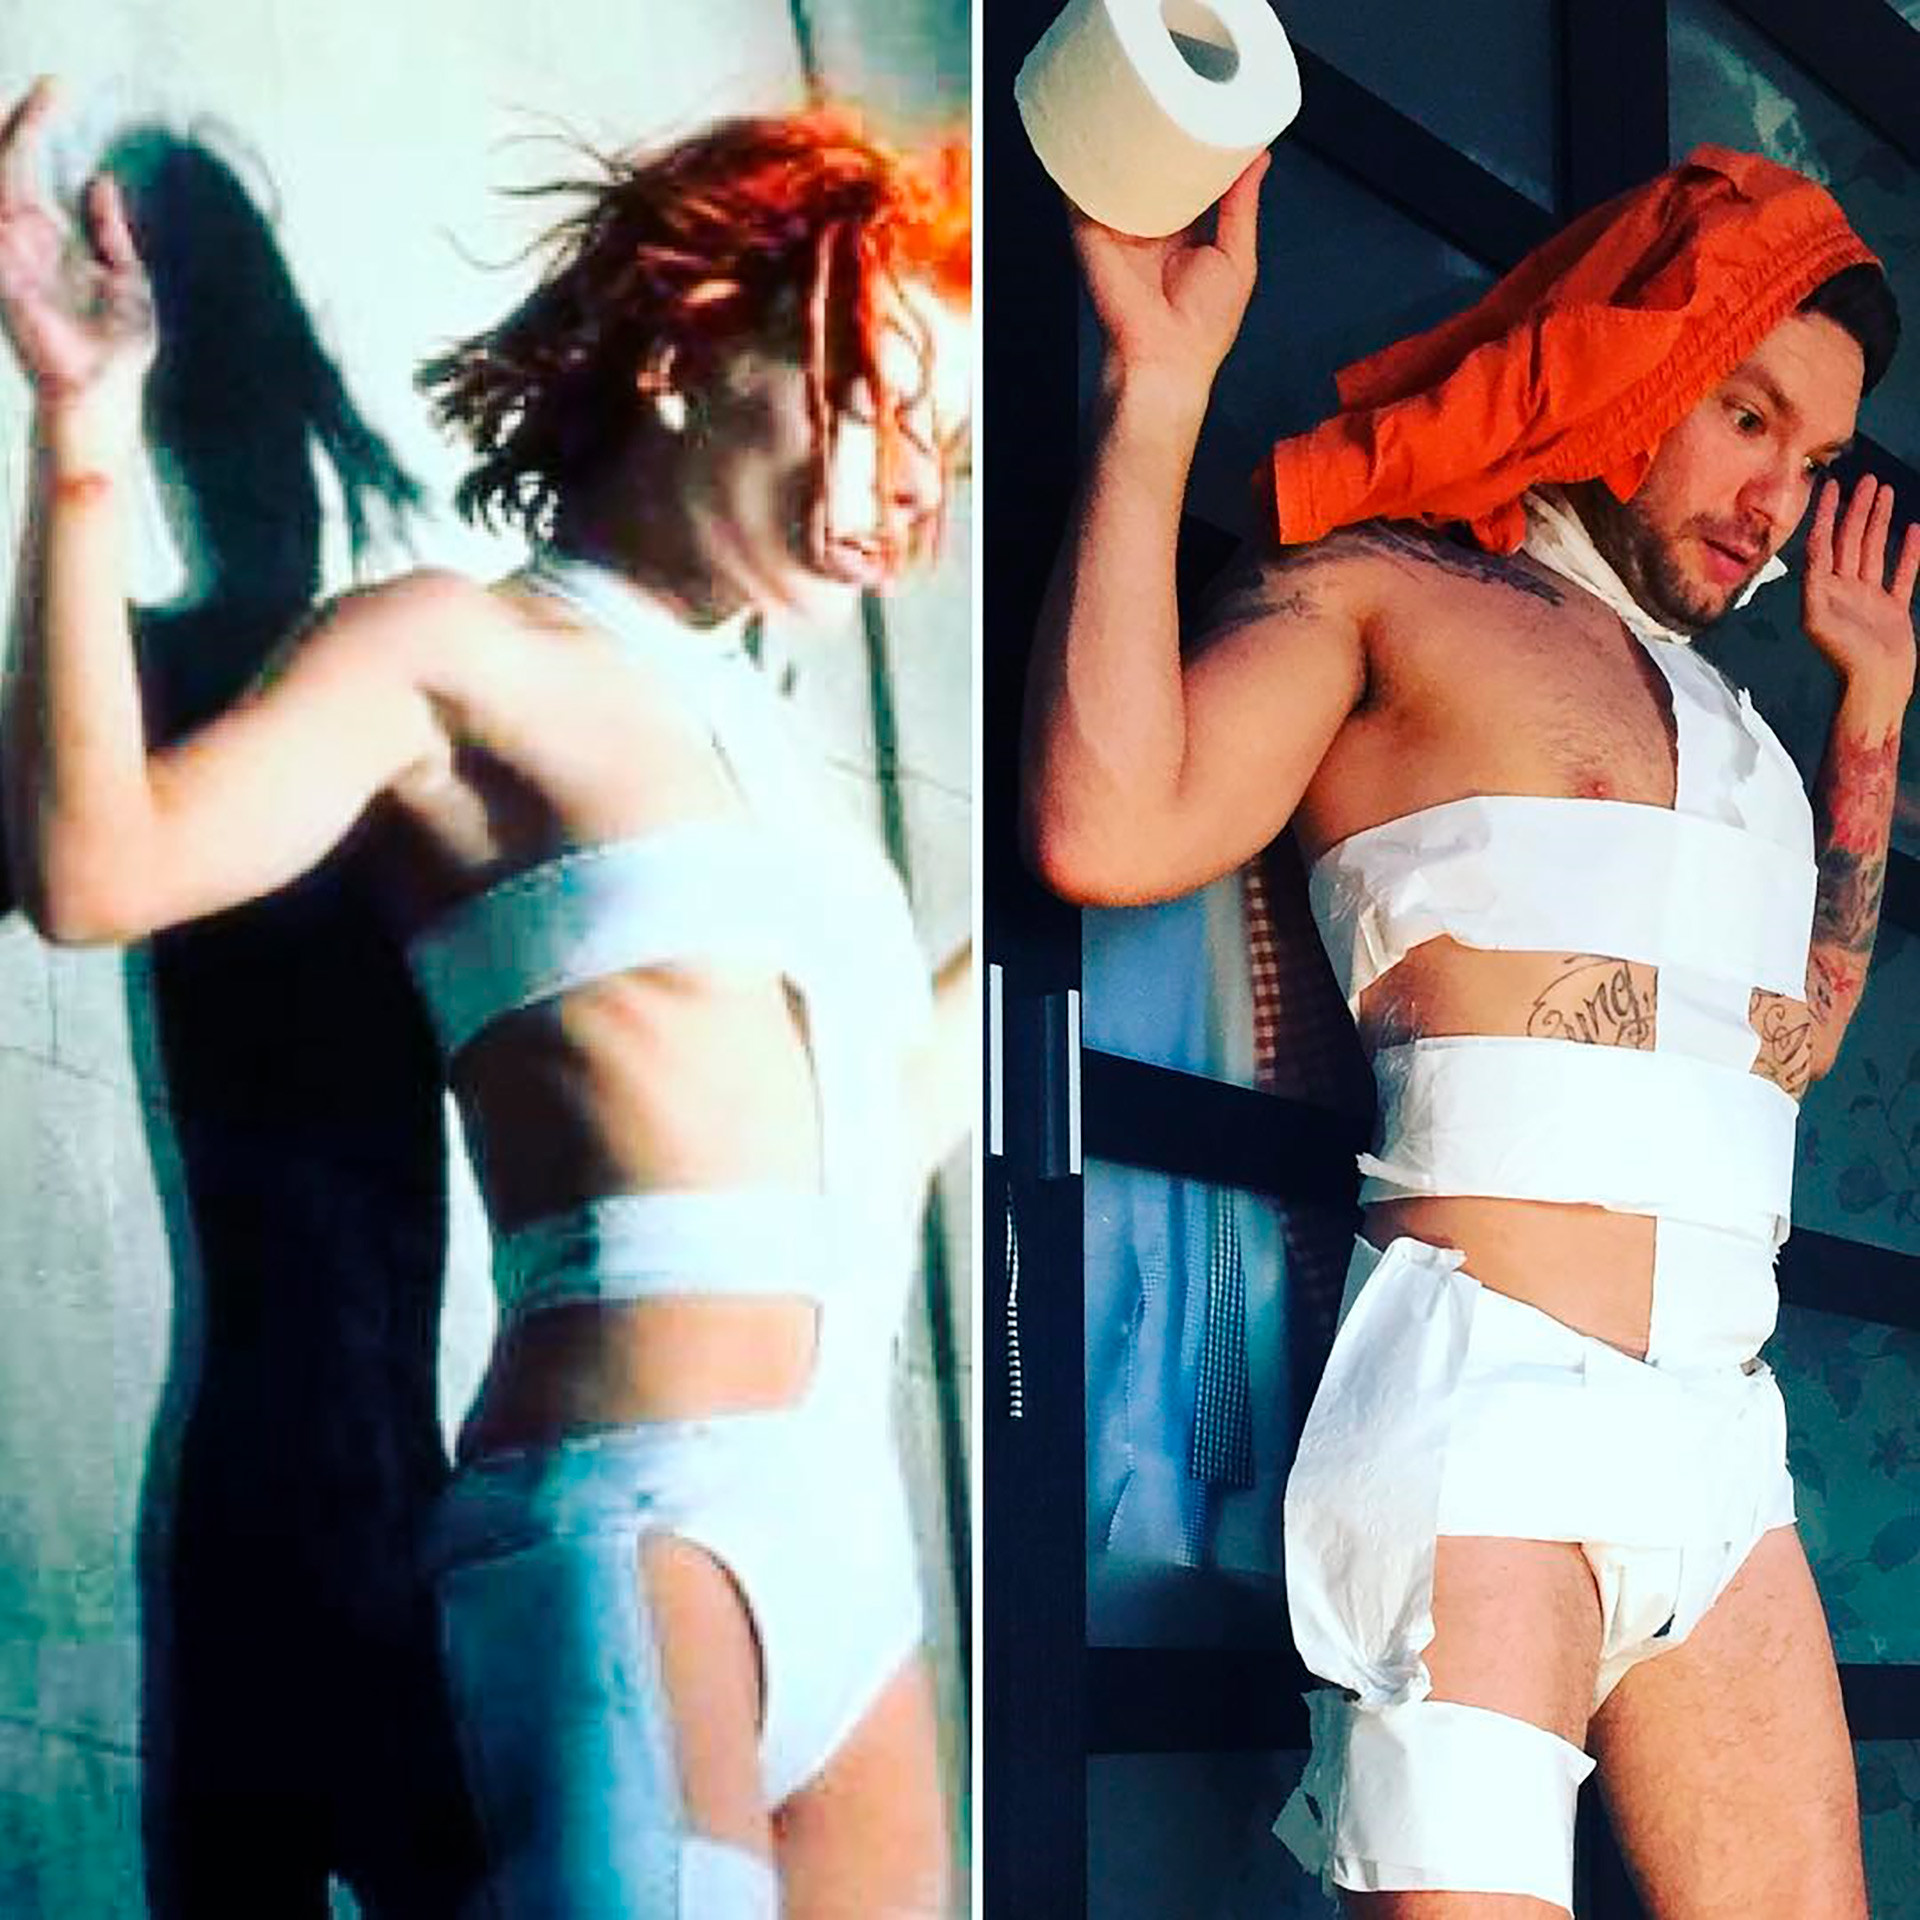 The Fifth Element, 1997 by Luc Besson / Sony pictures